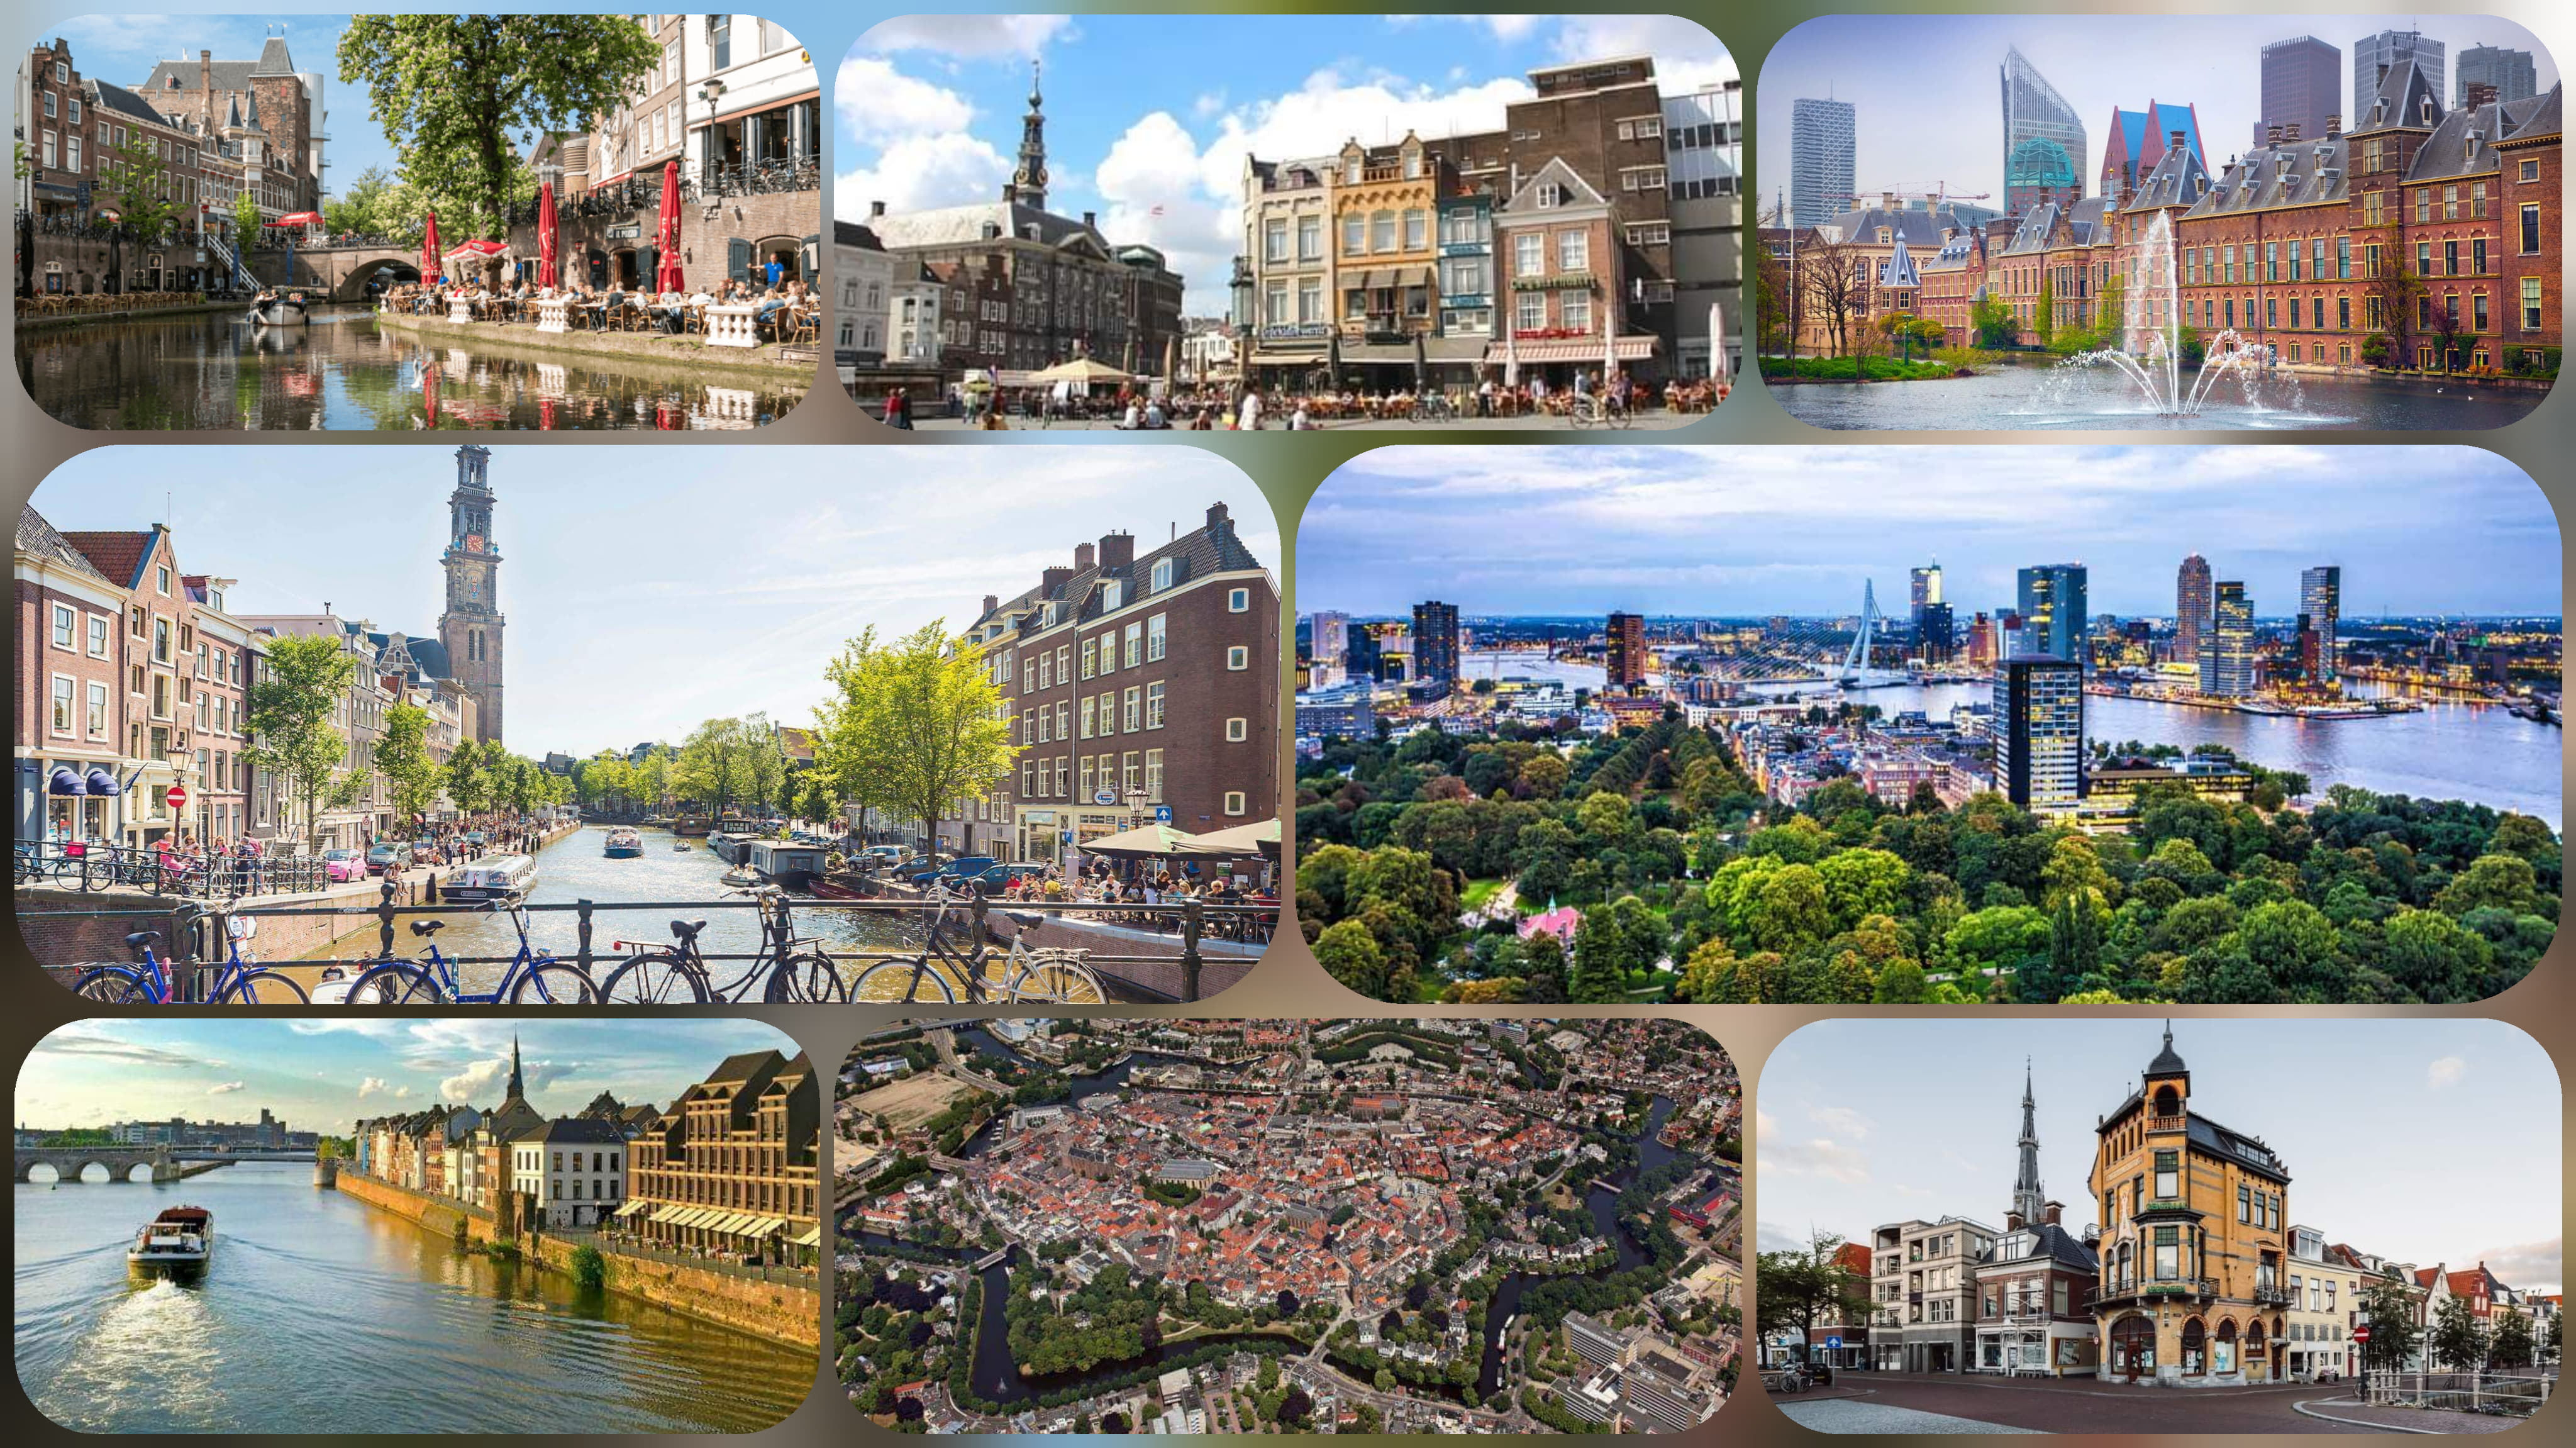 Eurovision 2020: The potential host cites and venues for the next contest in The Netherlands